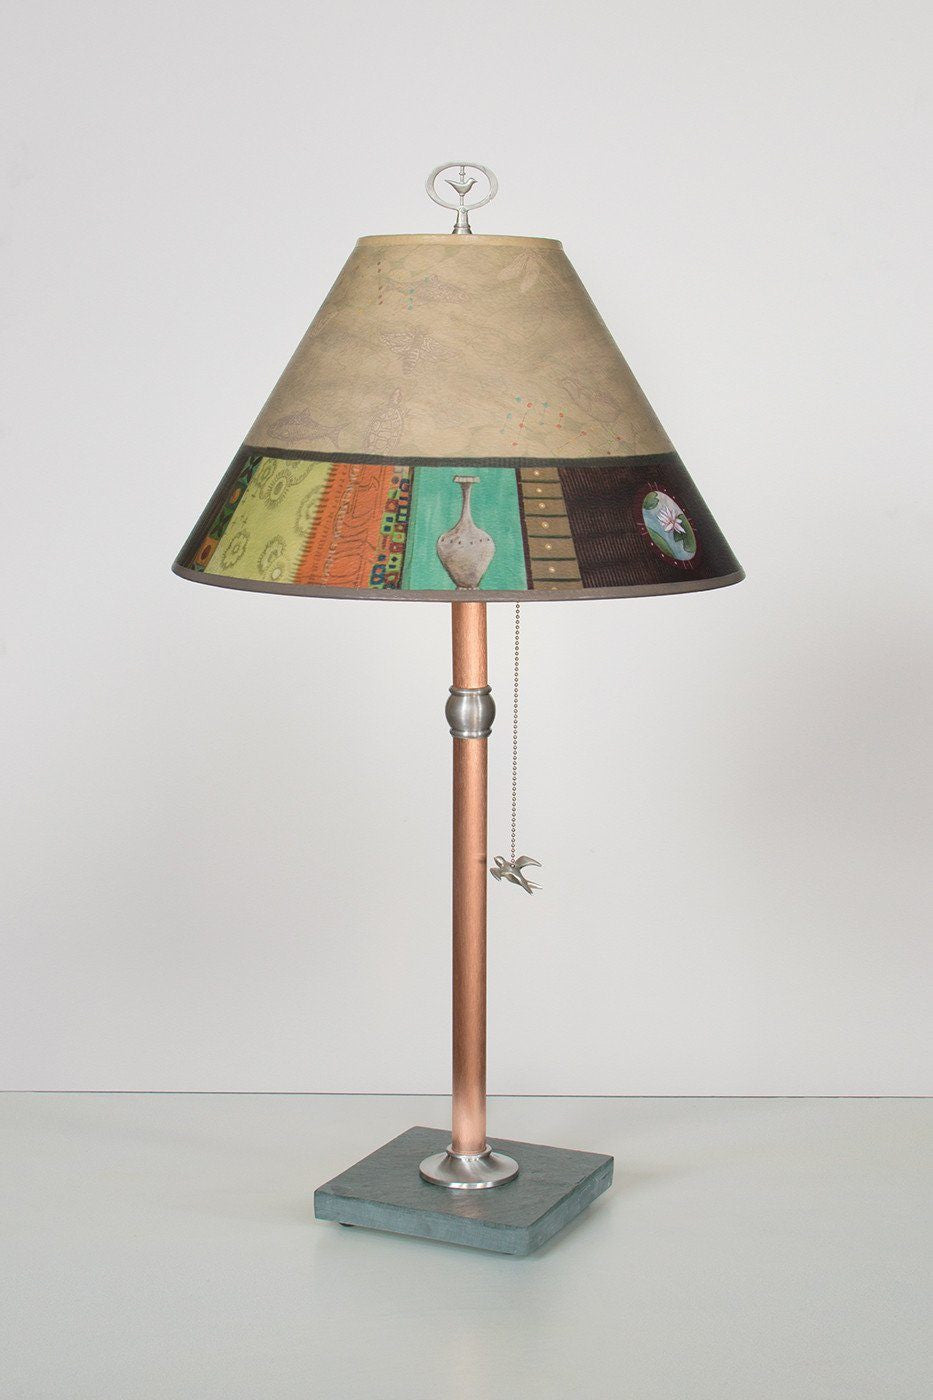 Copper Table Lamp with Medium Conical Shade in Linen Match - Lit